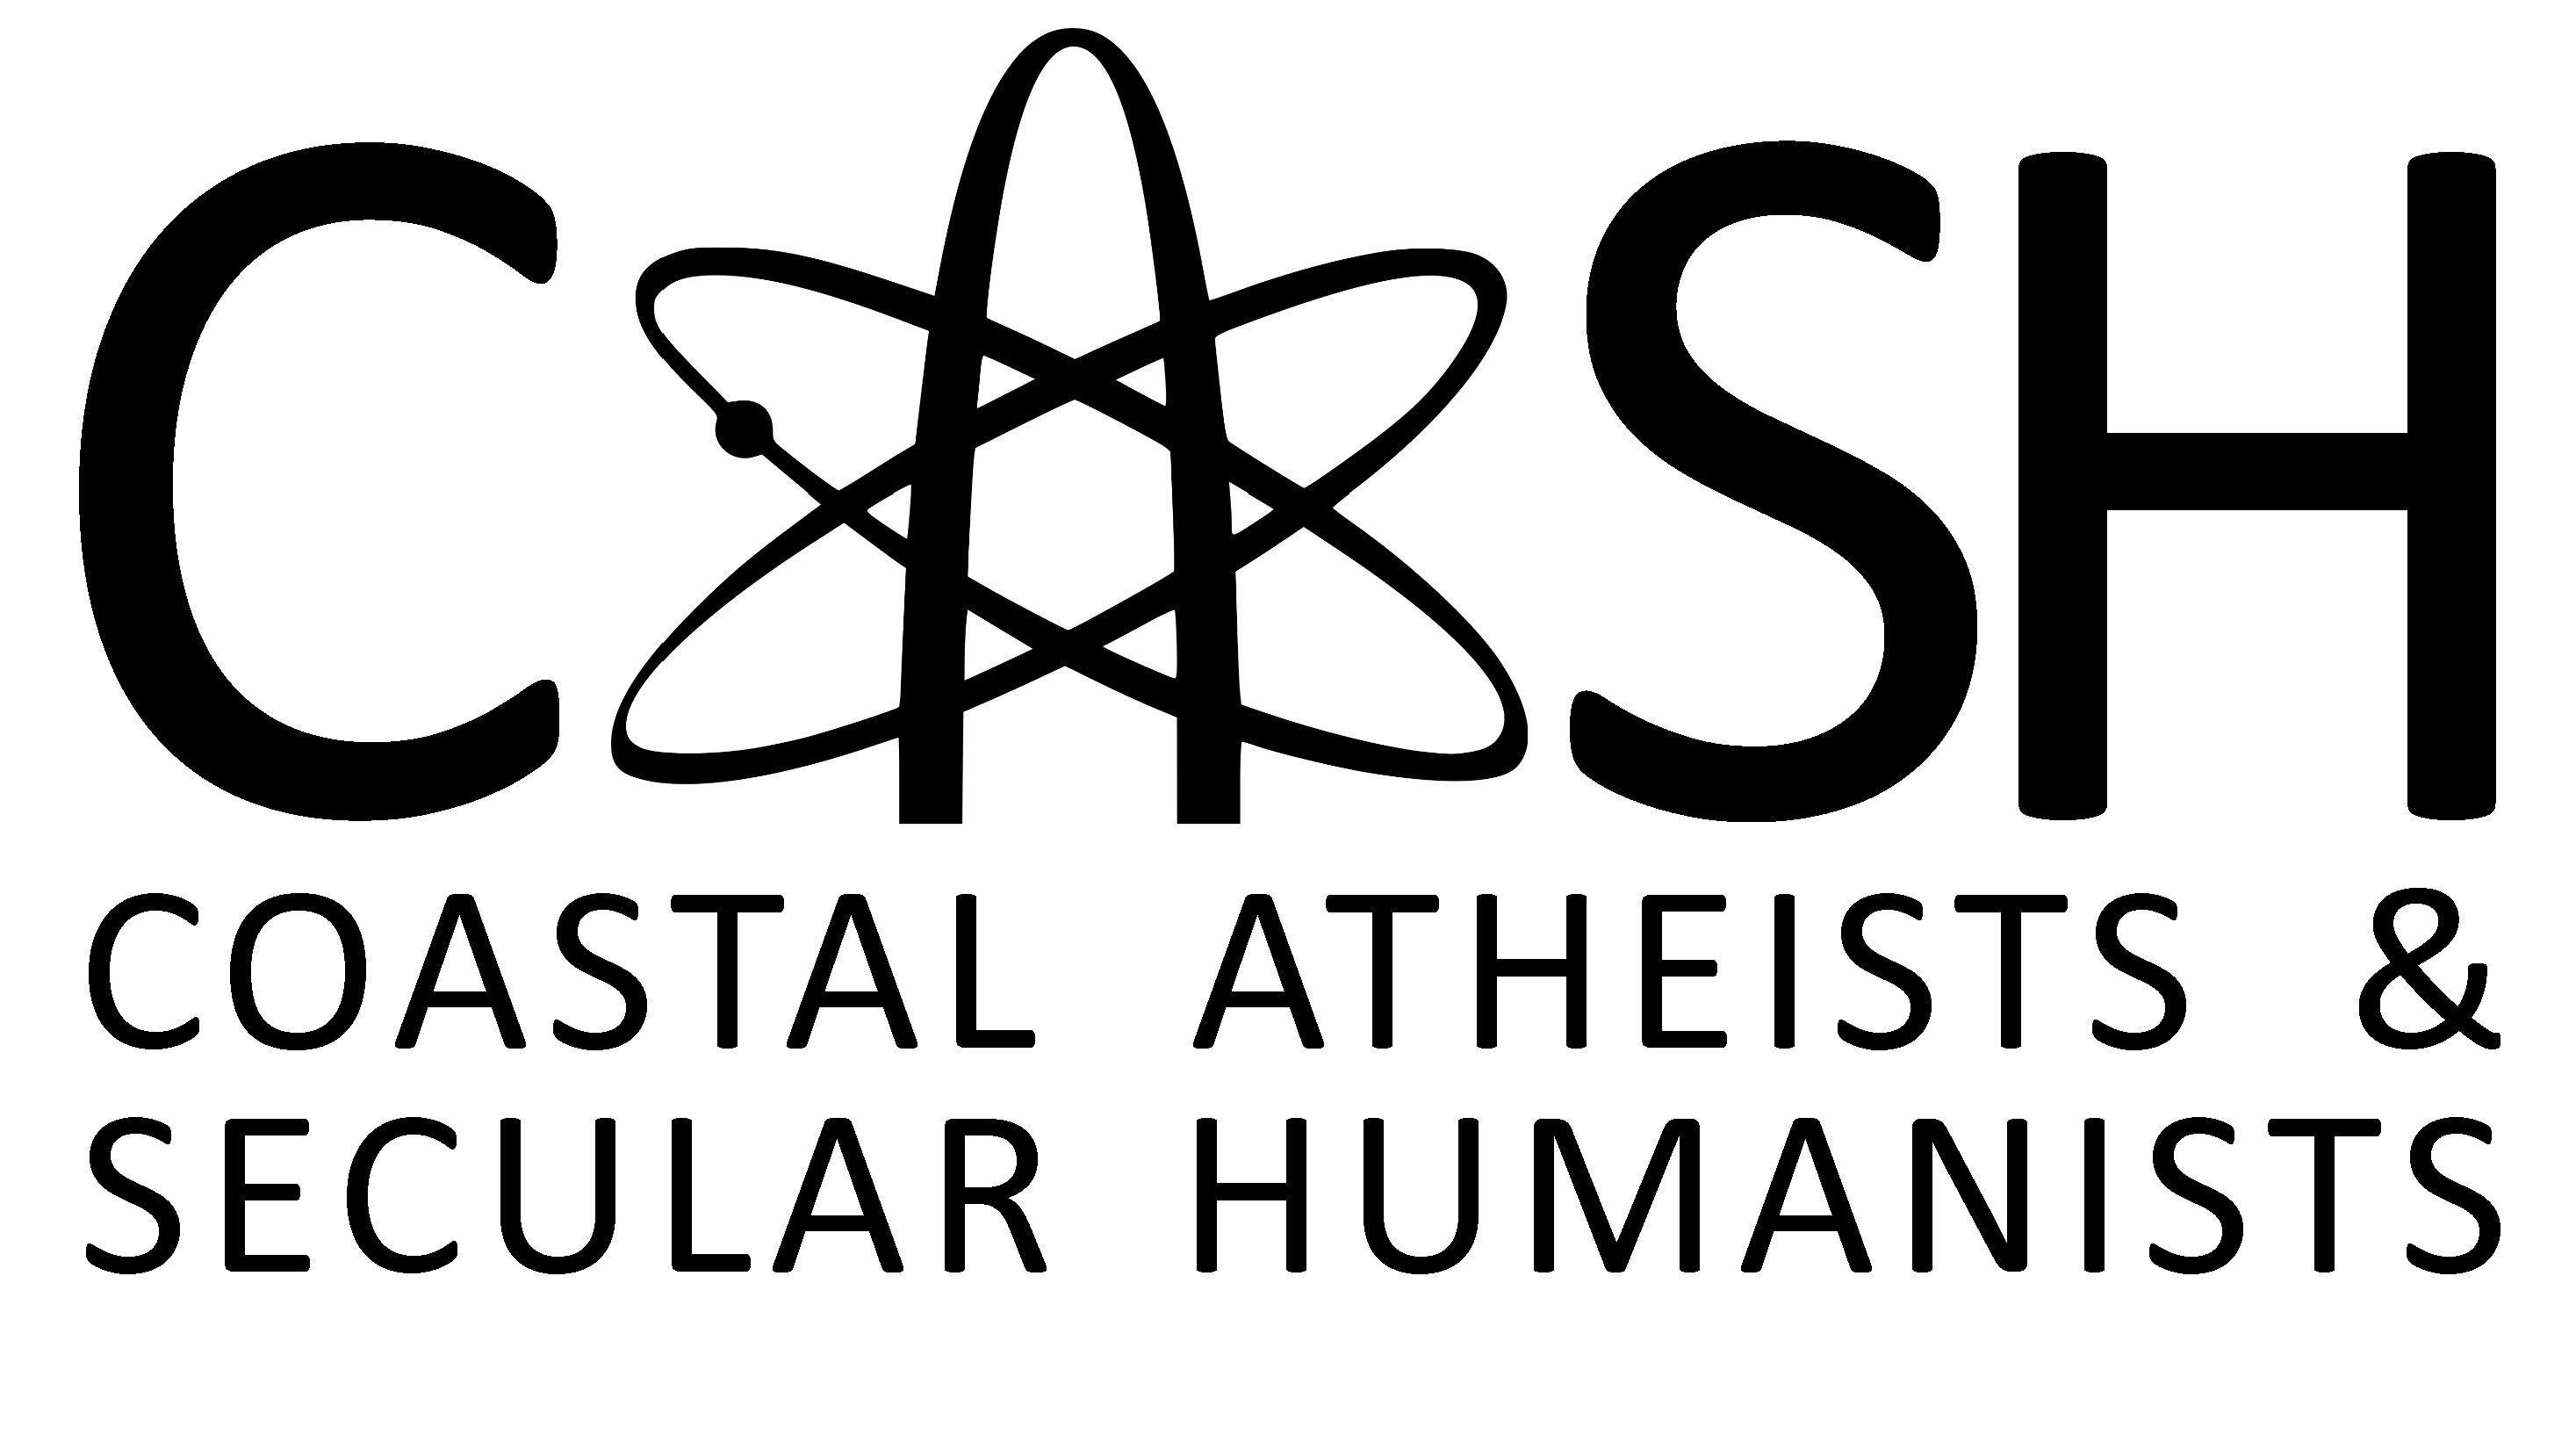 Coastal Atheists and Secular Humanists (CASH)